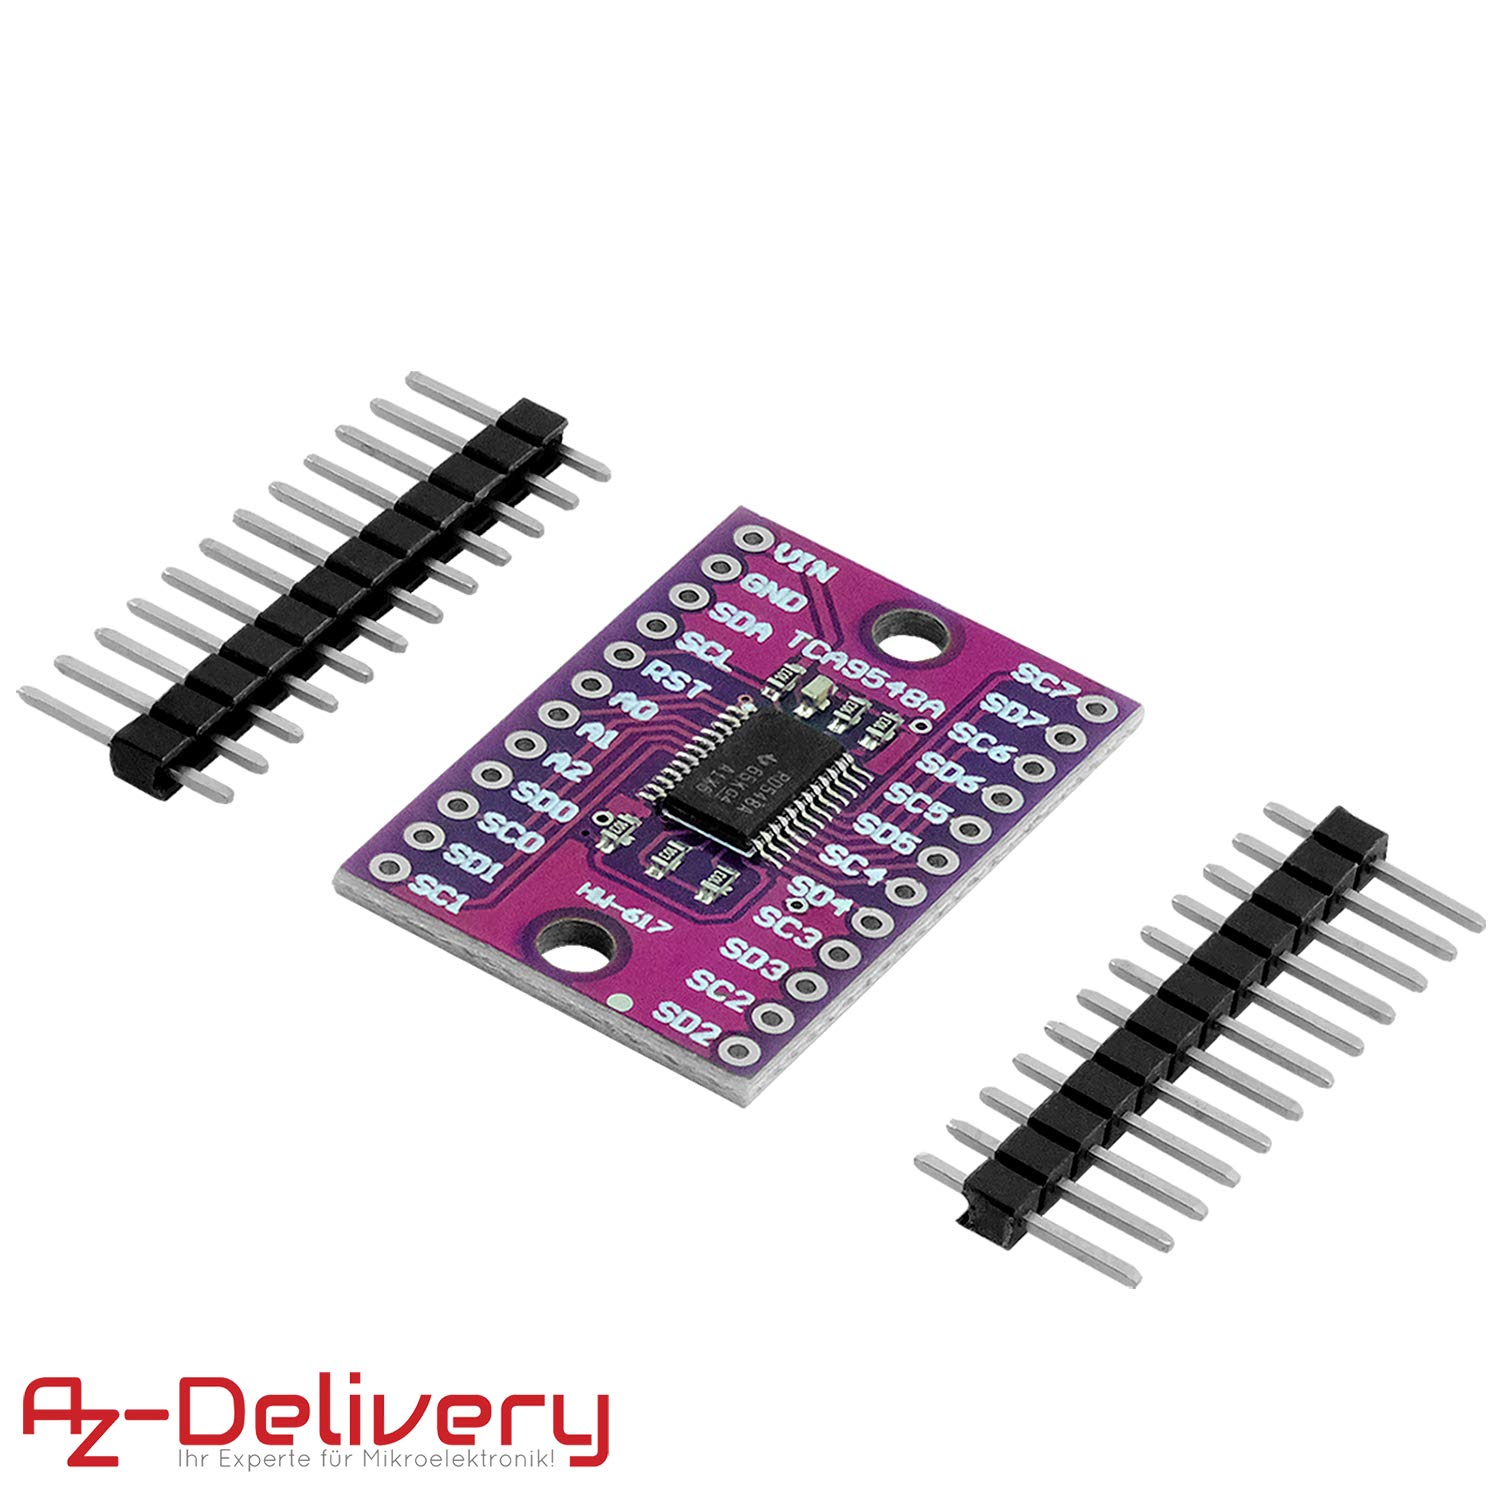 AZDelivery TCA9548A Low-Voltage 8-Channel I2C Multiplexer Including E-Book!